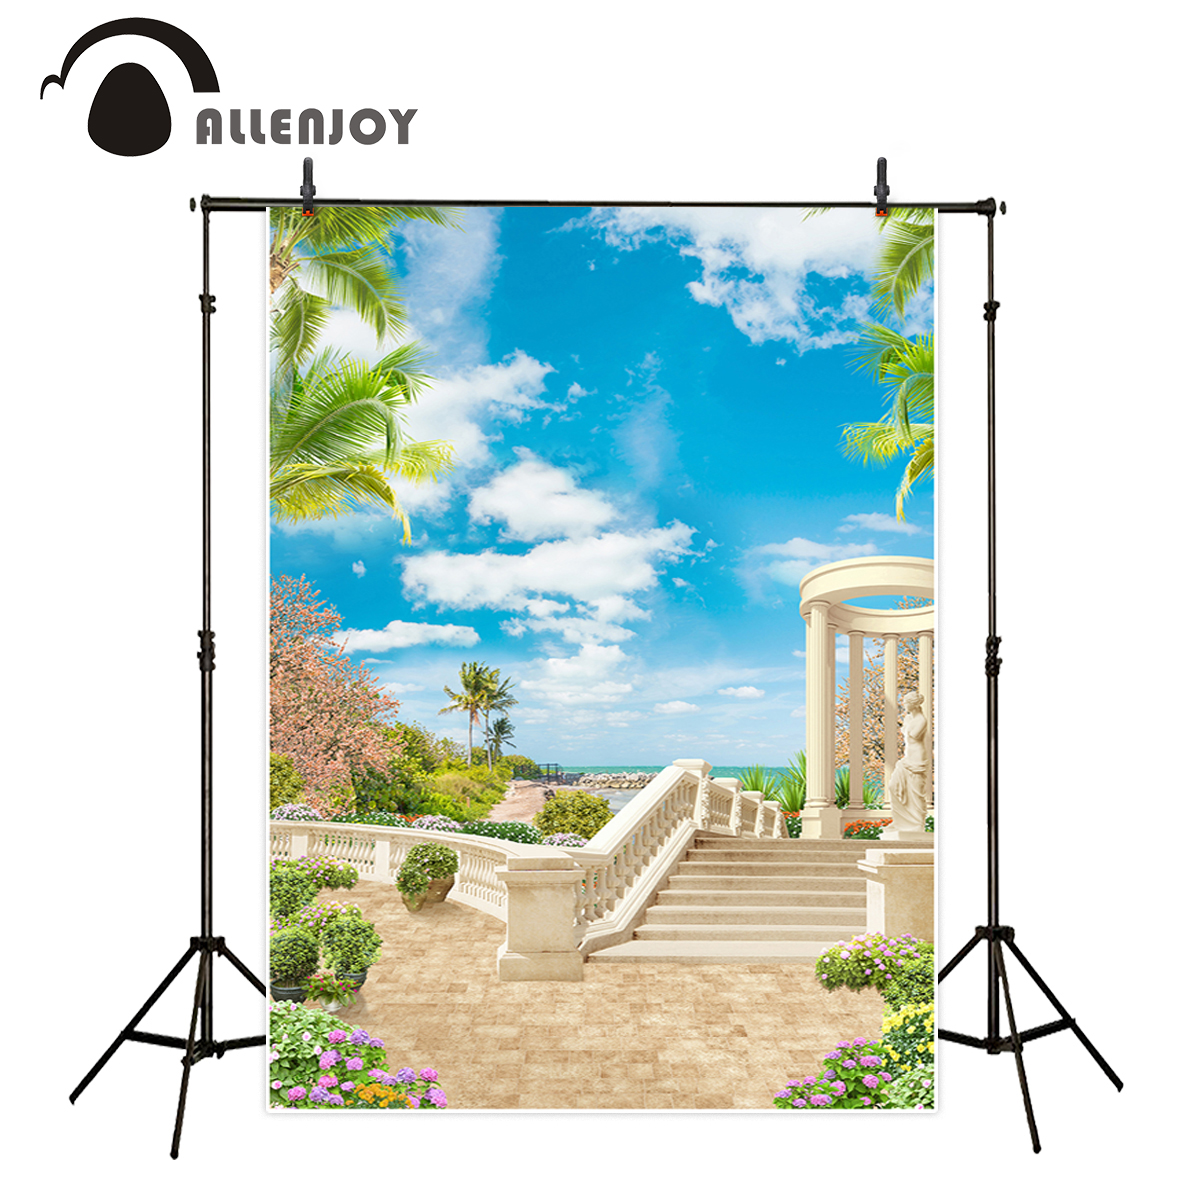 Allenjoy Roman Holiday vinyl backdrops for photography sky tropical floral stone floor background photography photo studio allenjoy photography backdrops book shelf in library graduation season background for photo studio